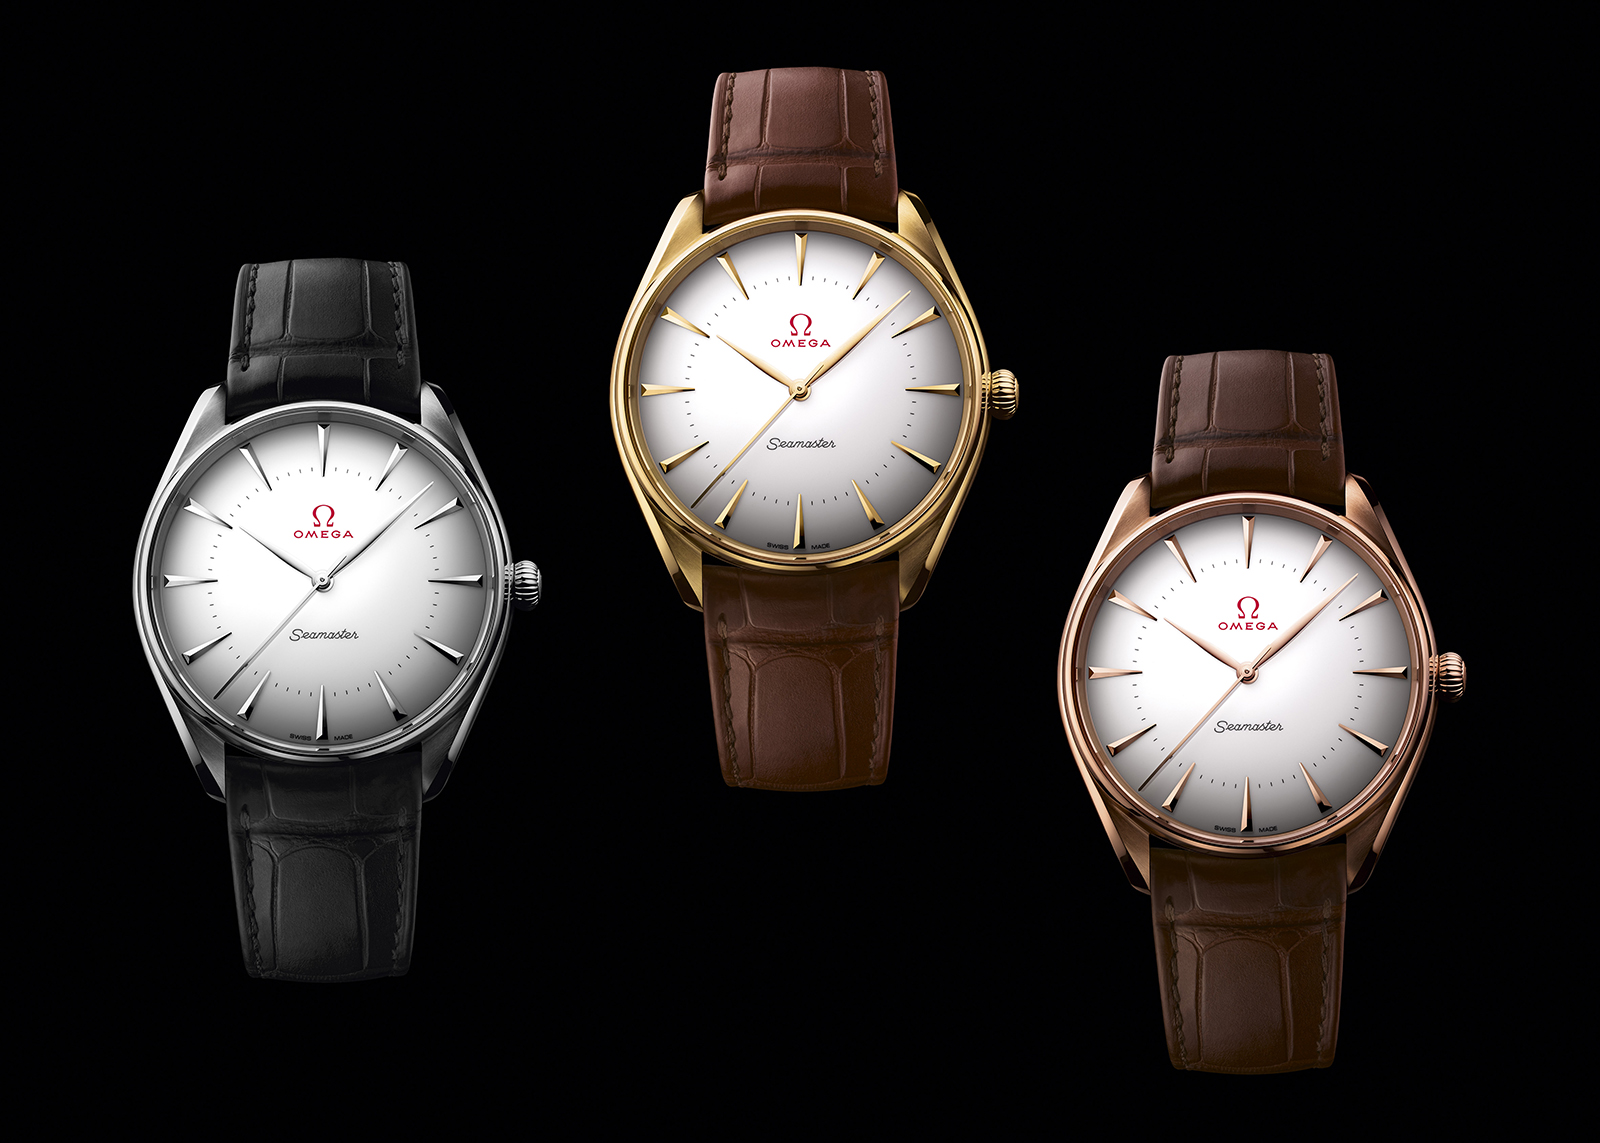 Omega Introduces The Seamaster Olympics U2013 1950s Style And